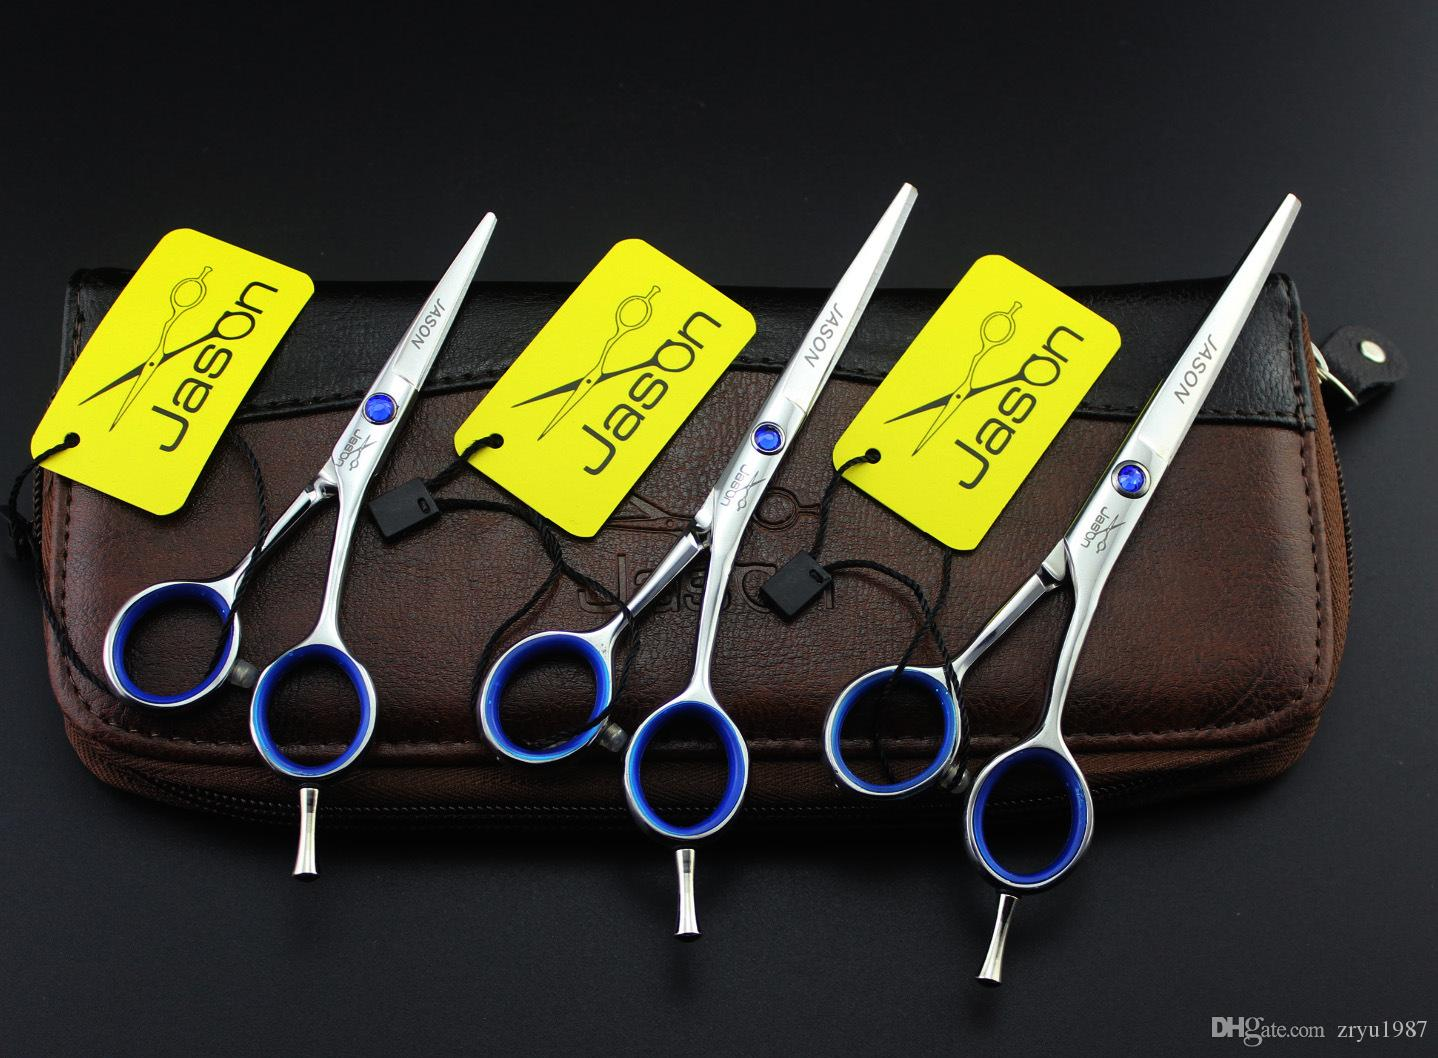 Hot sale Professional Hairdressing Scissors set high quality hair cutting scissor hair scissors tesouras 4inch 5 inch 5.5 inch